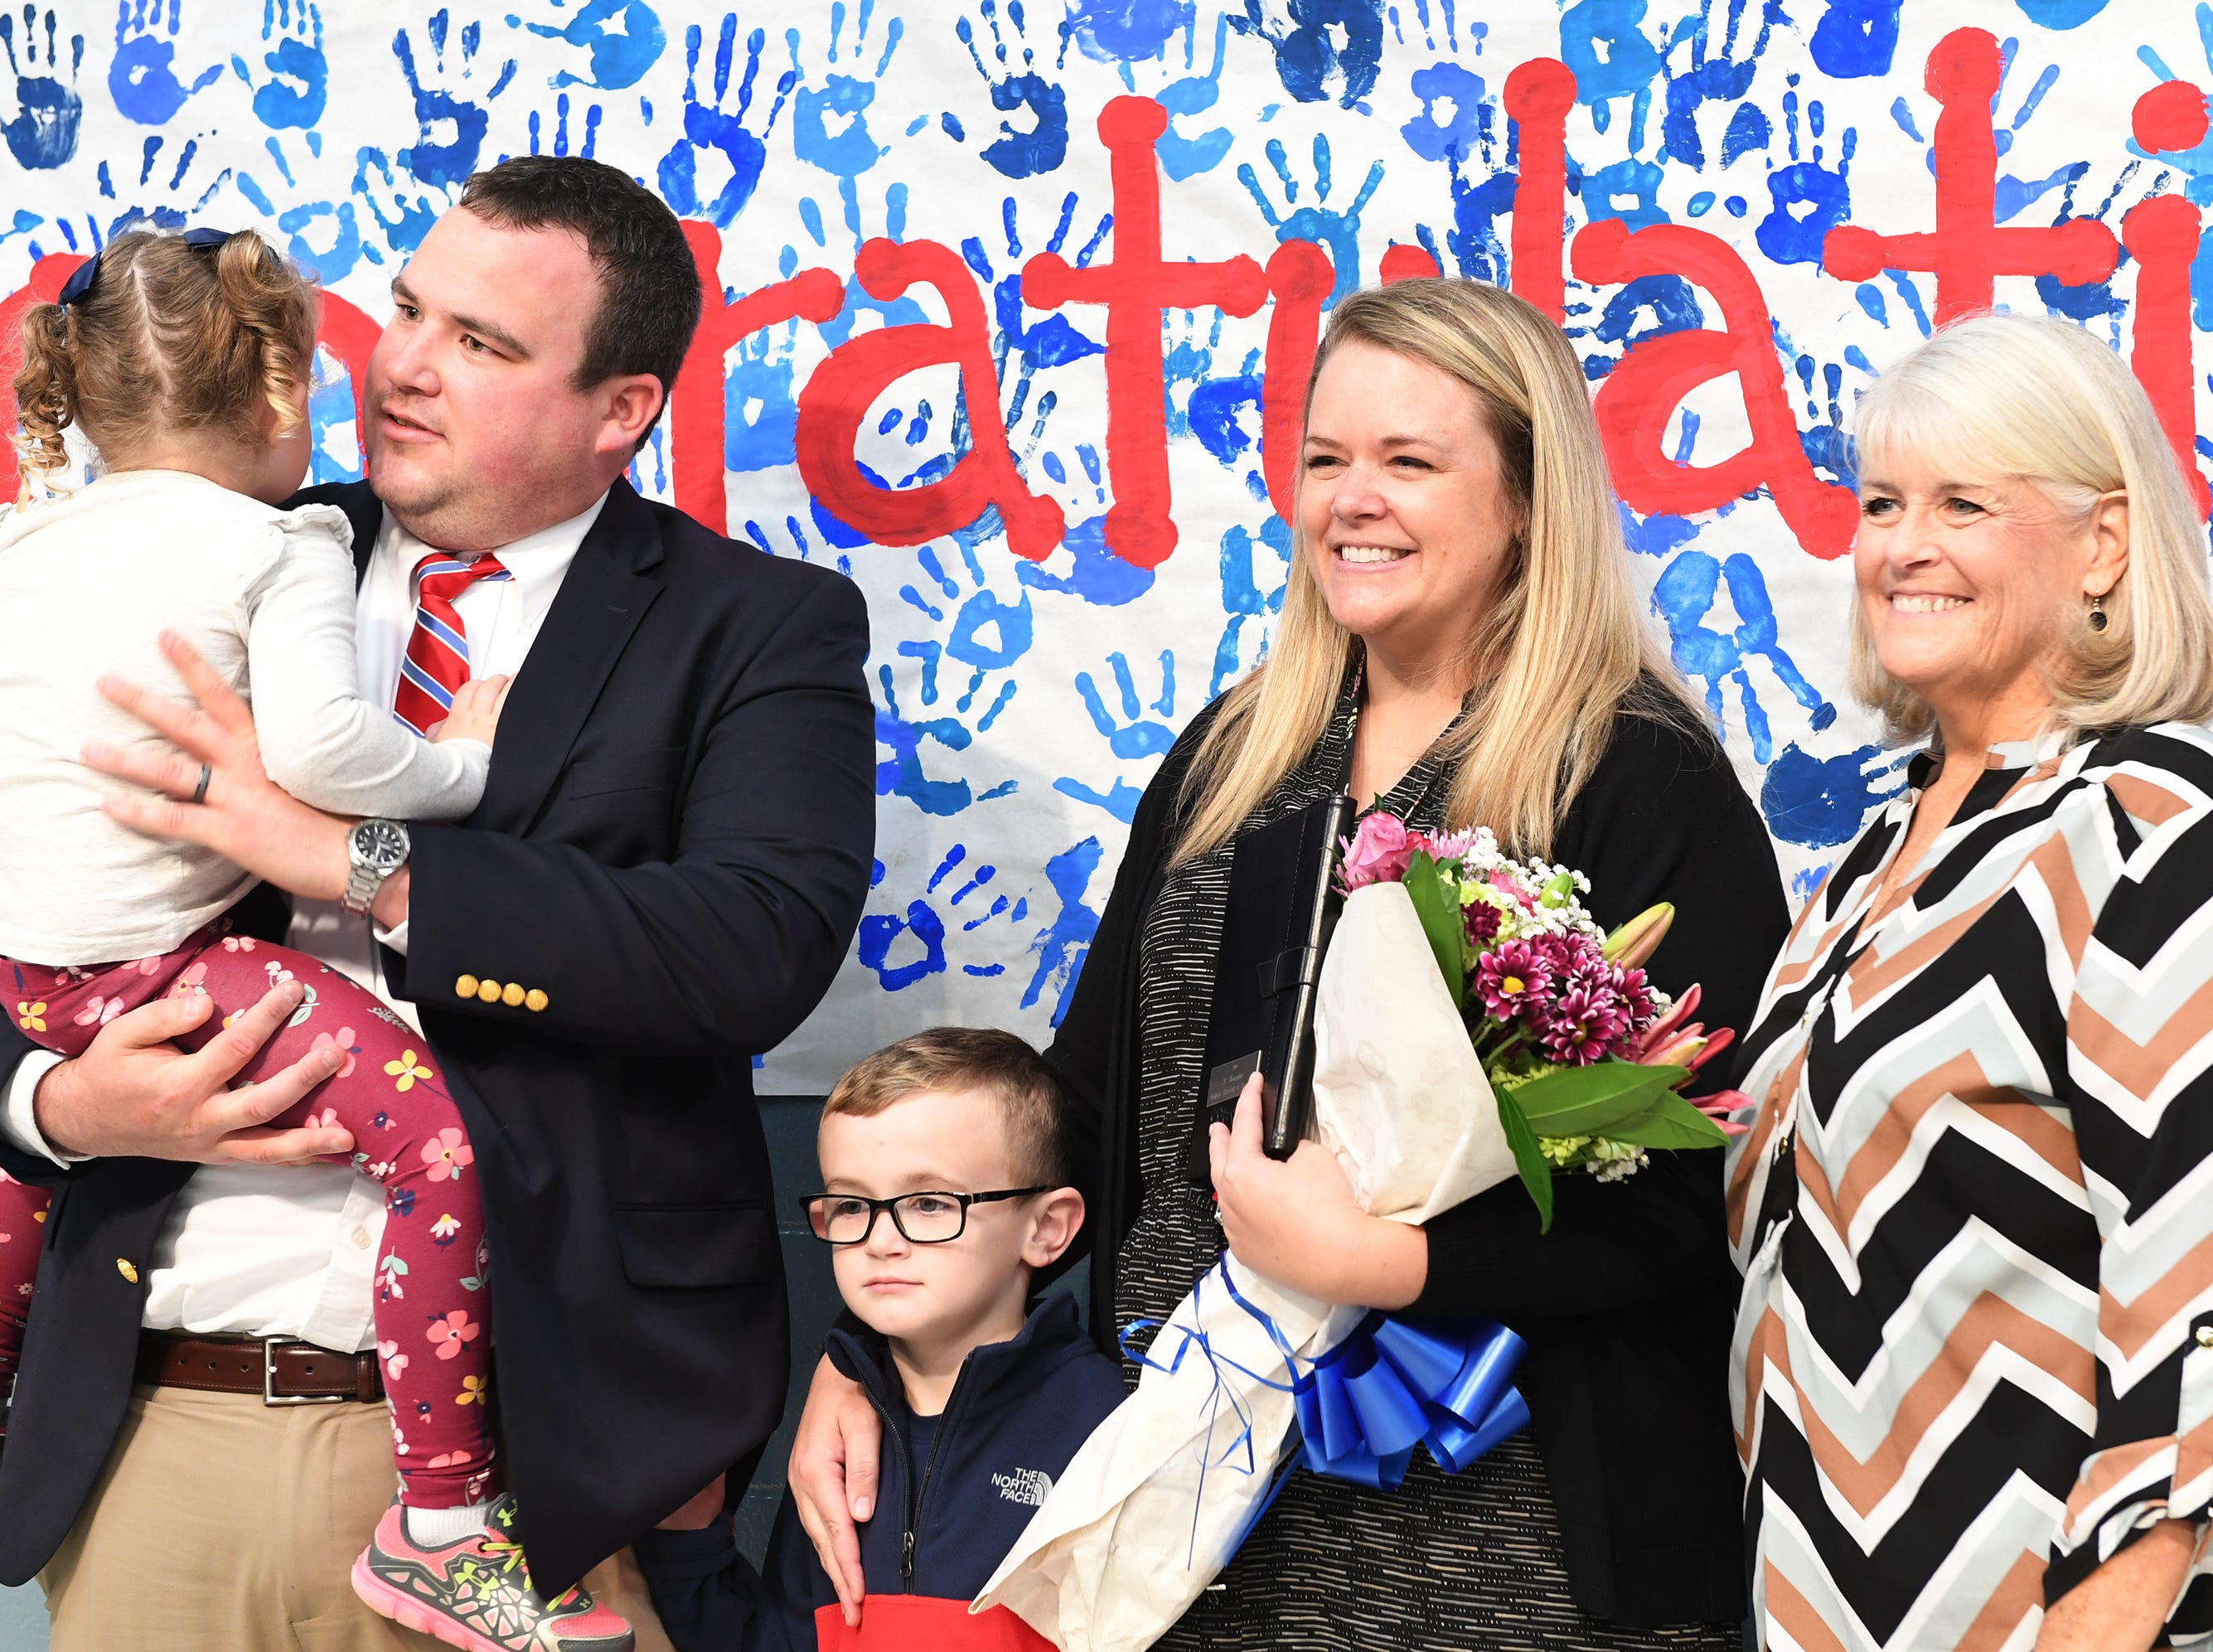 Simpsonville Elementary School Assistant Principal Leah Stafford's family including husband Todd, children Jackson, 5, and Sara Kate, 3, and mother Cathy Ebel, were at the school for the surprise announcement that Stafford is the 2019 SC Elementary Assistant Principal of the Year, Friday, Nov. 30, 2018.